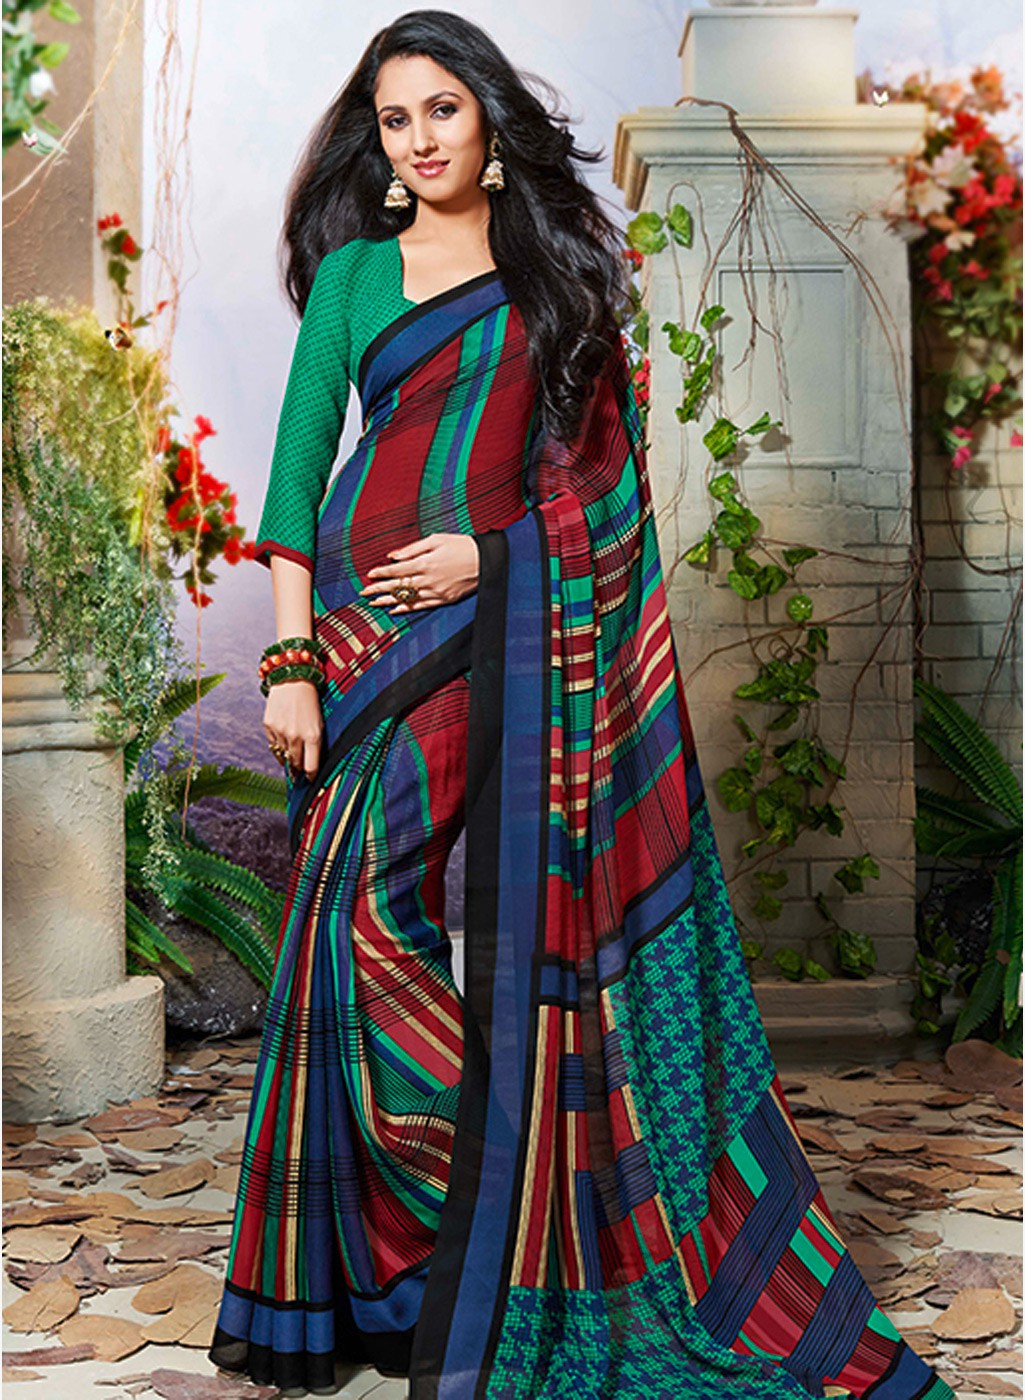 New Collection of Indian dresses upscale type of Saree Soft colors and ...